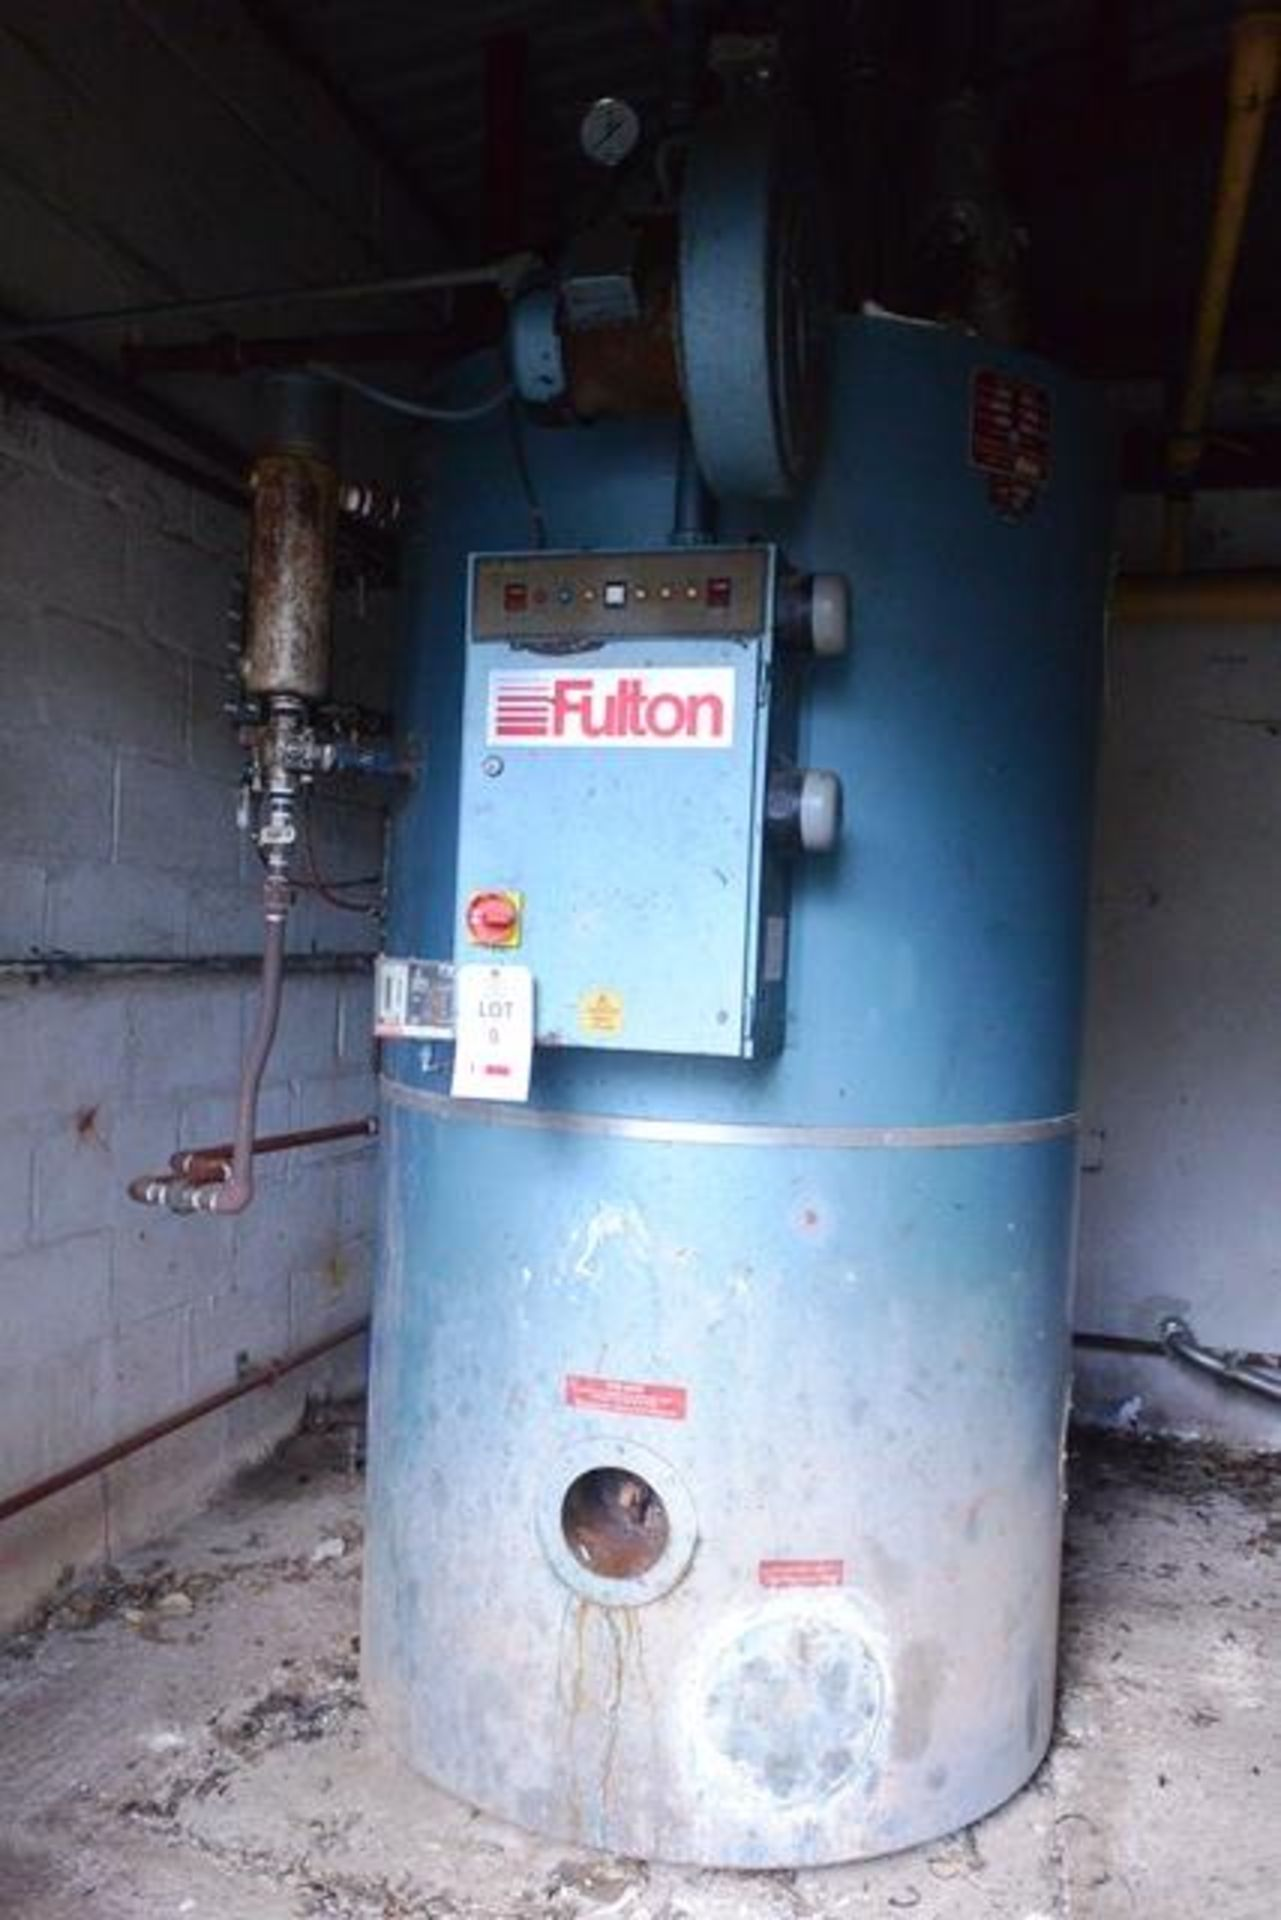 Fulton steam boiler, model 30E, serial no. B7026, design pressure 895 N/mm², test pressure /34N/